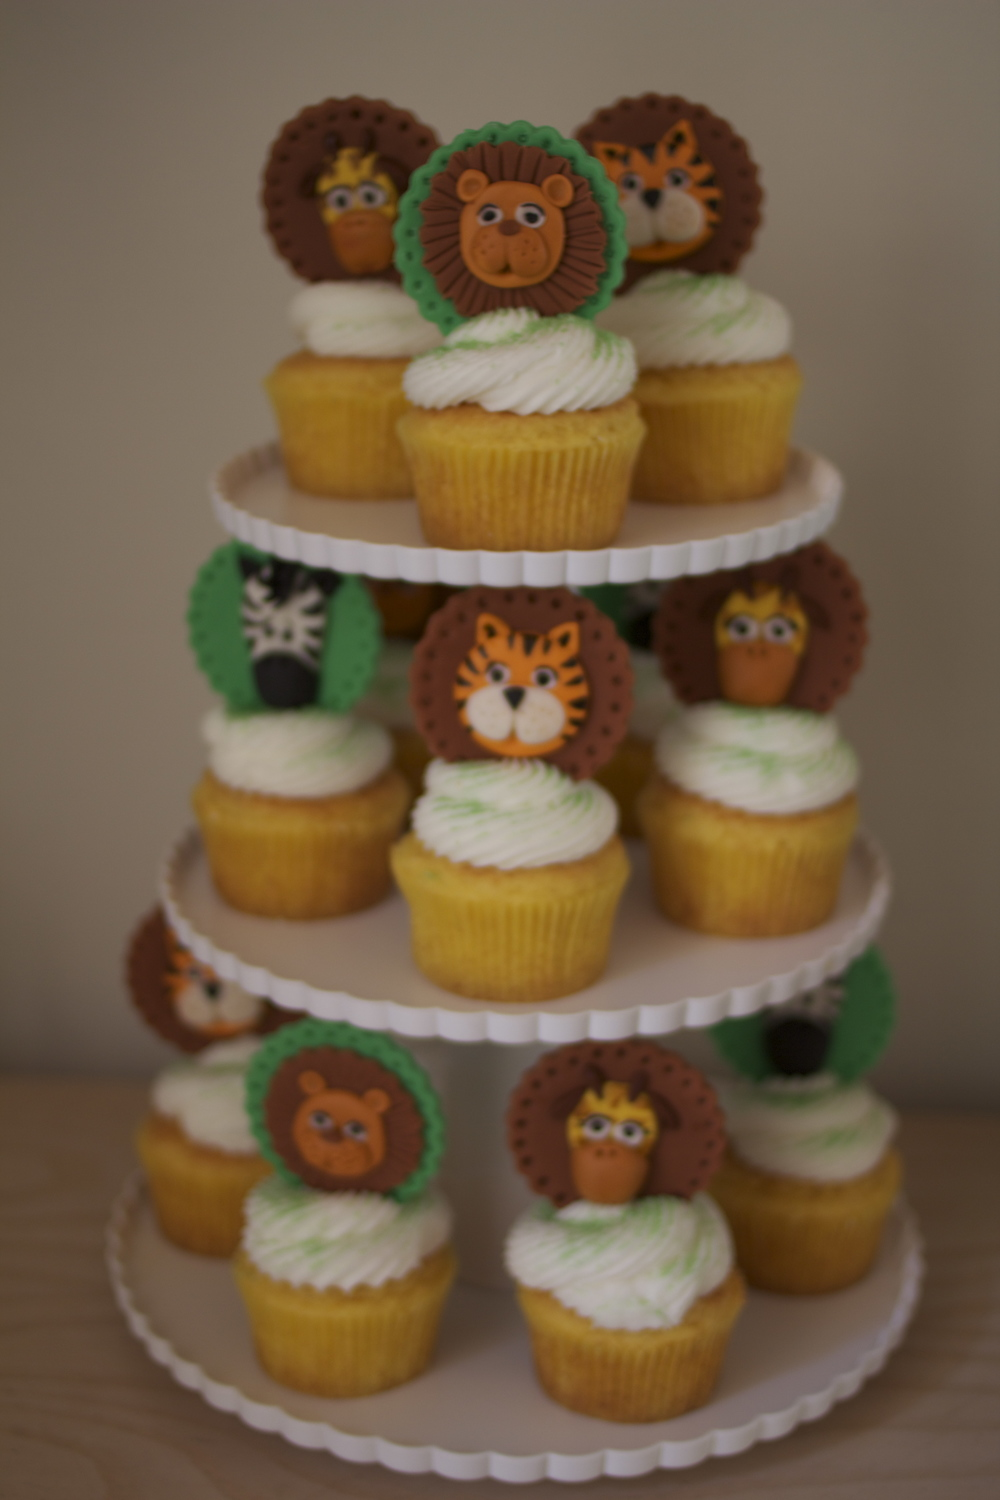 Cupcakes by Leelee too!